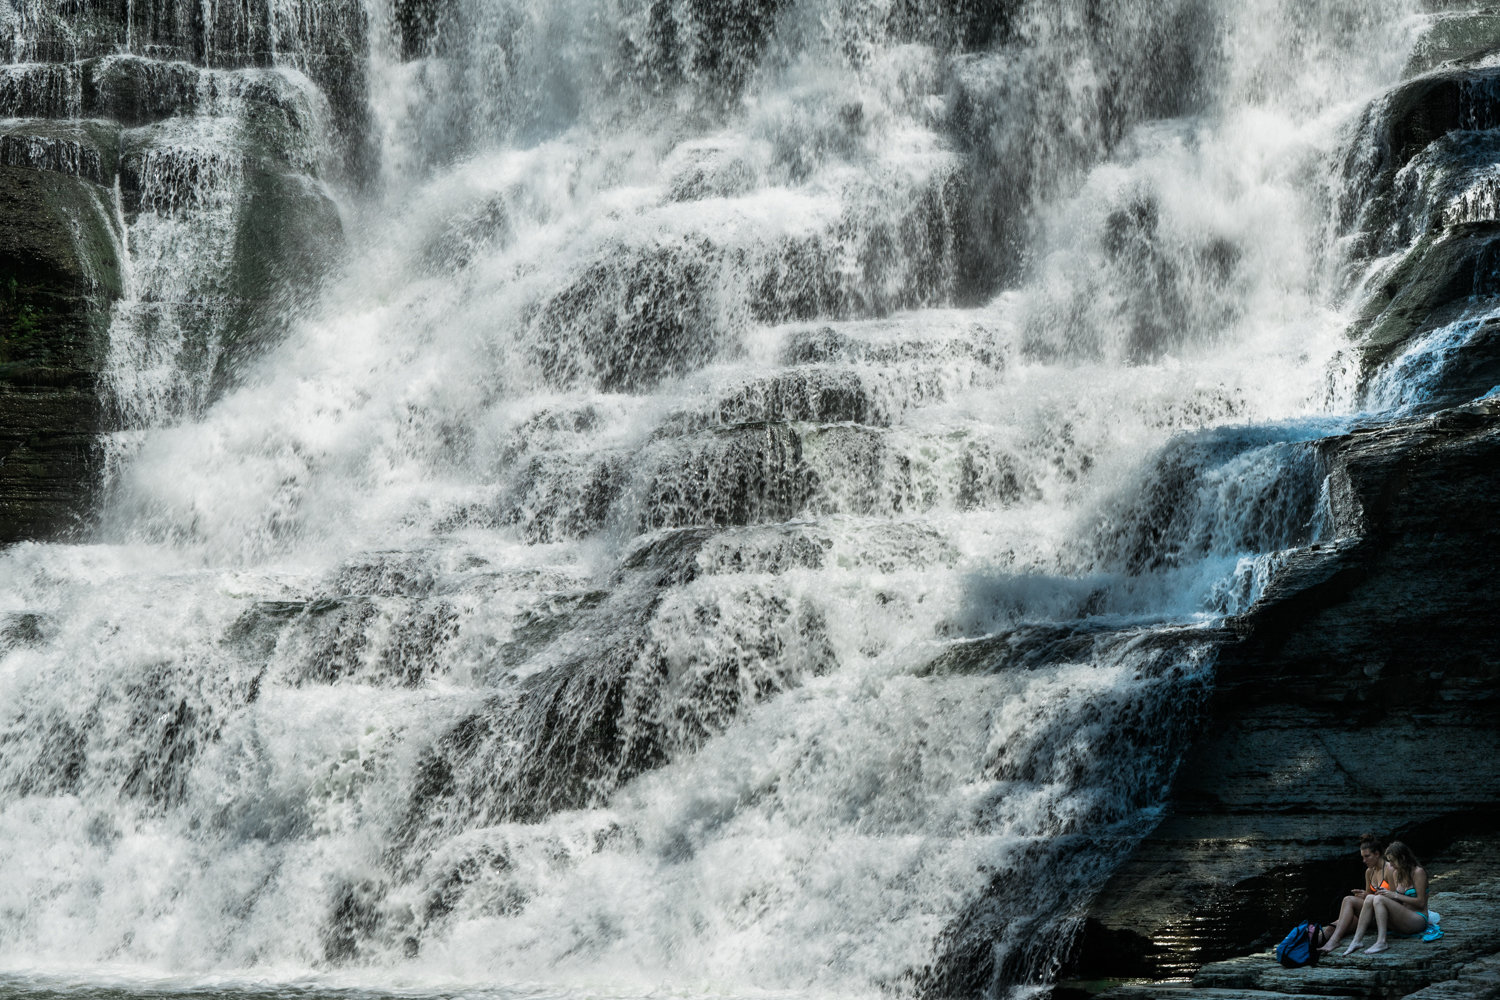 Ithaca Falls - New York - waterfall - nature - travel - fine art photography